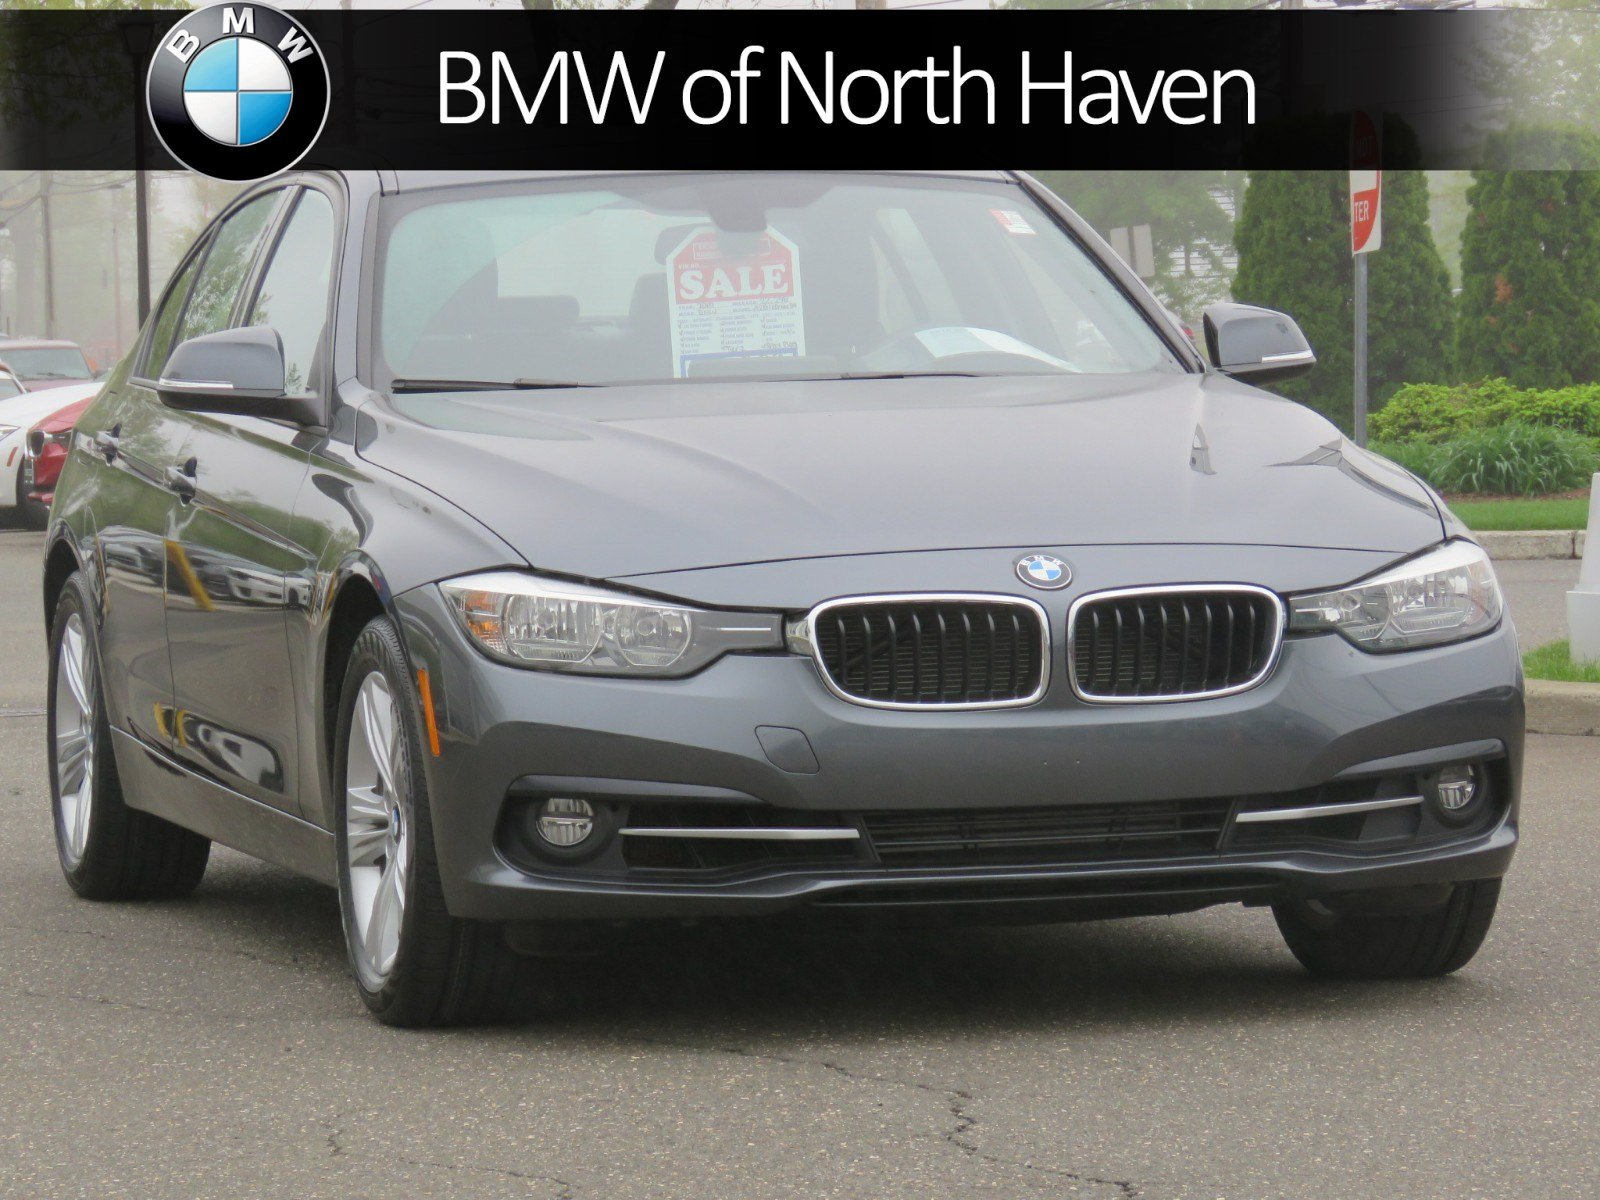 bmw lease deals north haven ct lamoureph blog. Black Bedroom Furniture Sets. Home Design Ideas